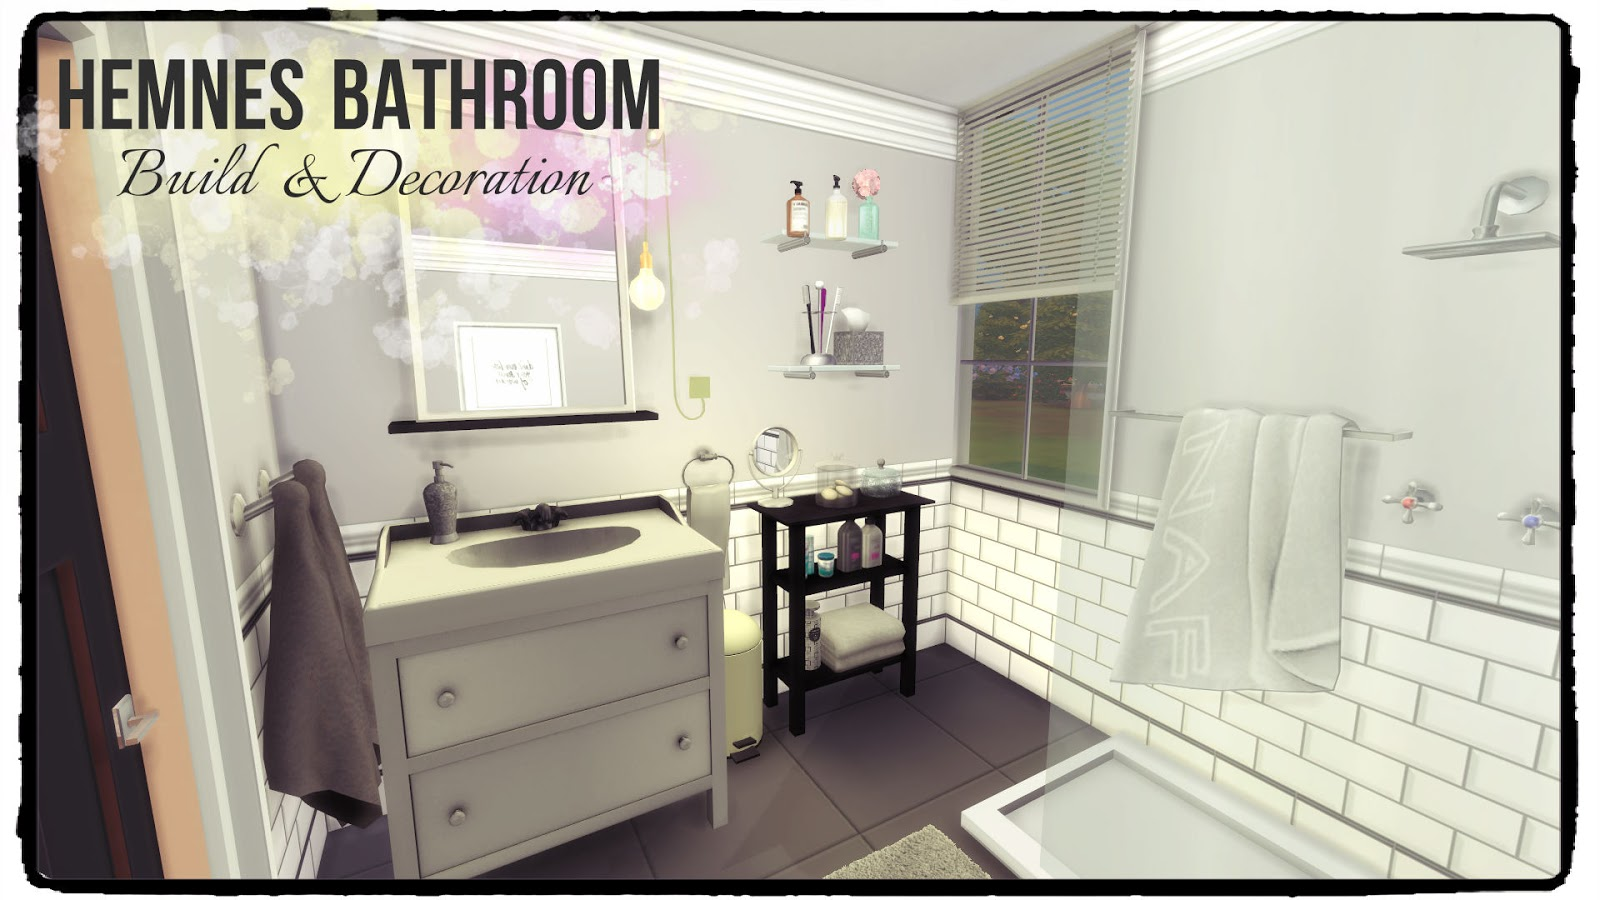 Sims 4   Hemnes Bathroom